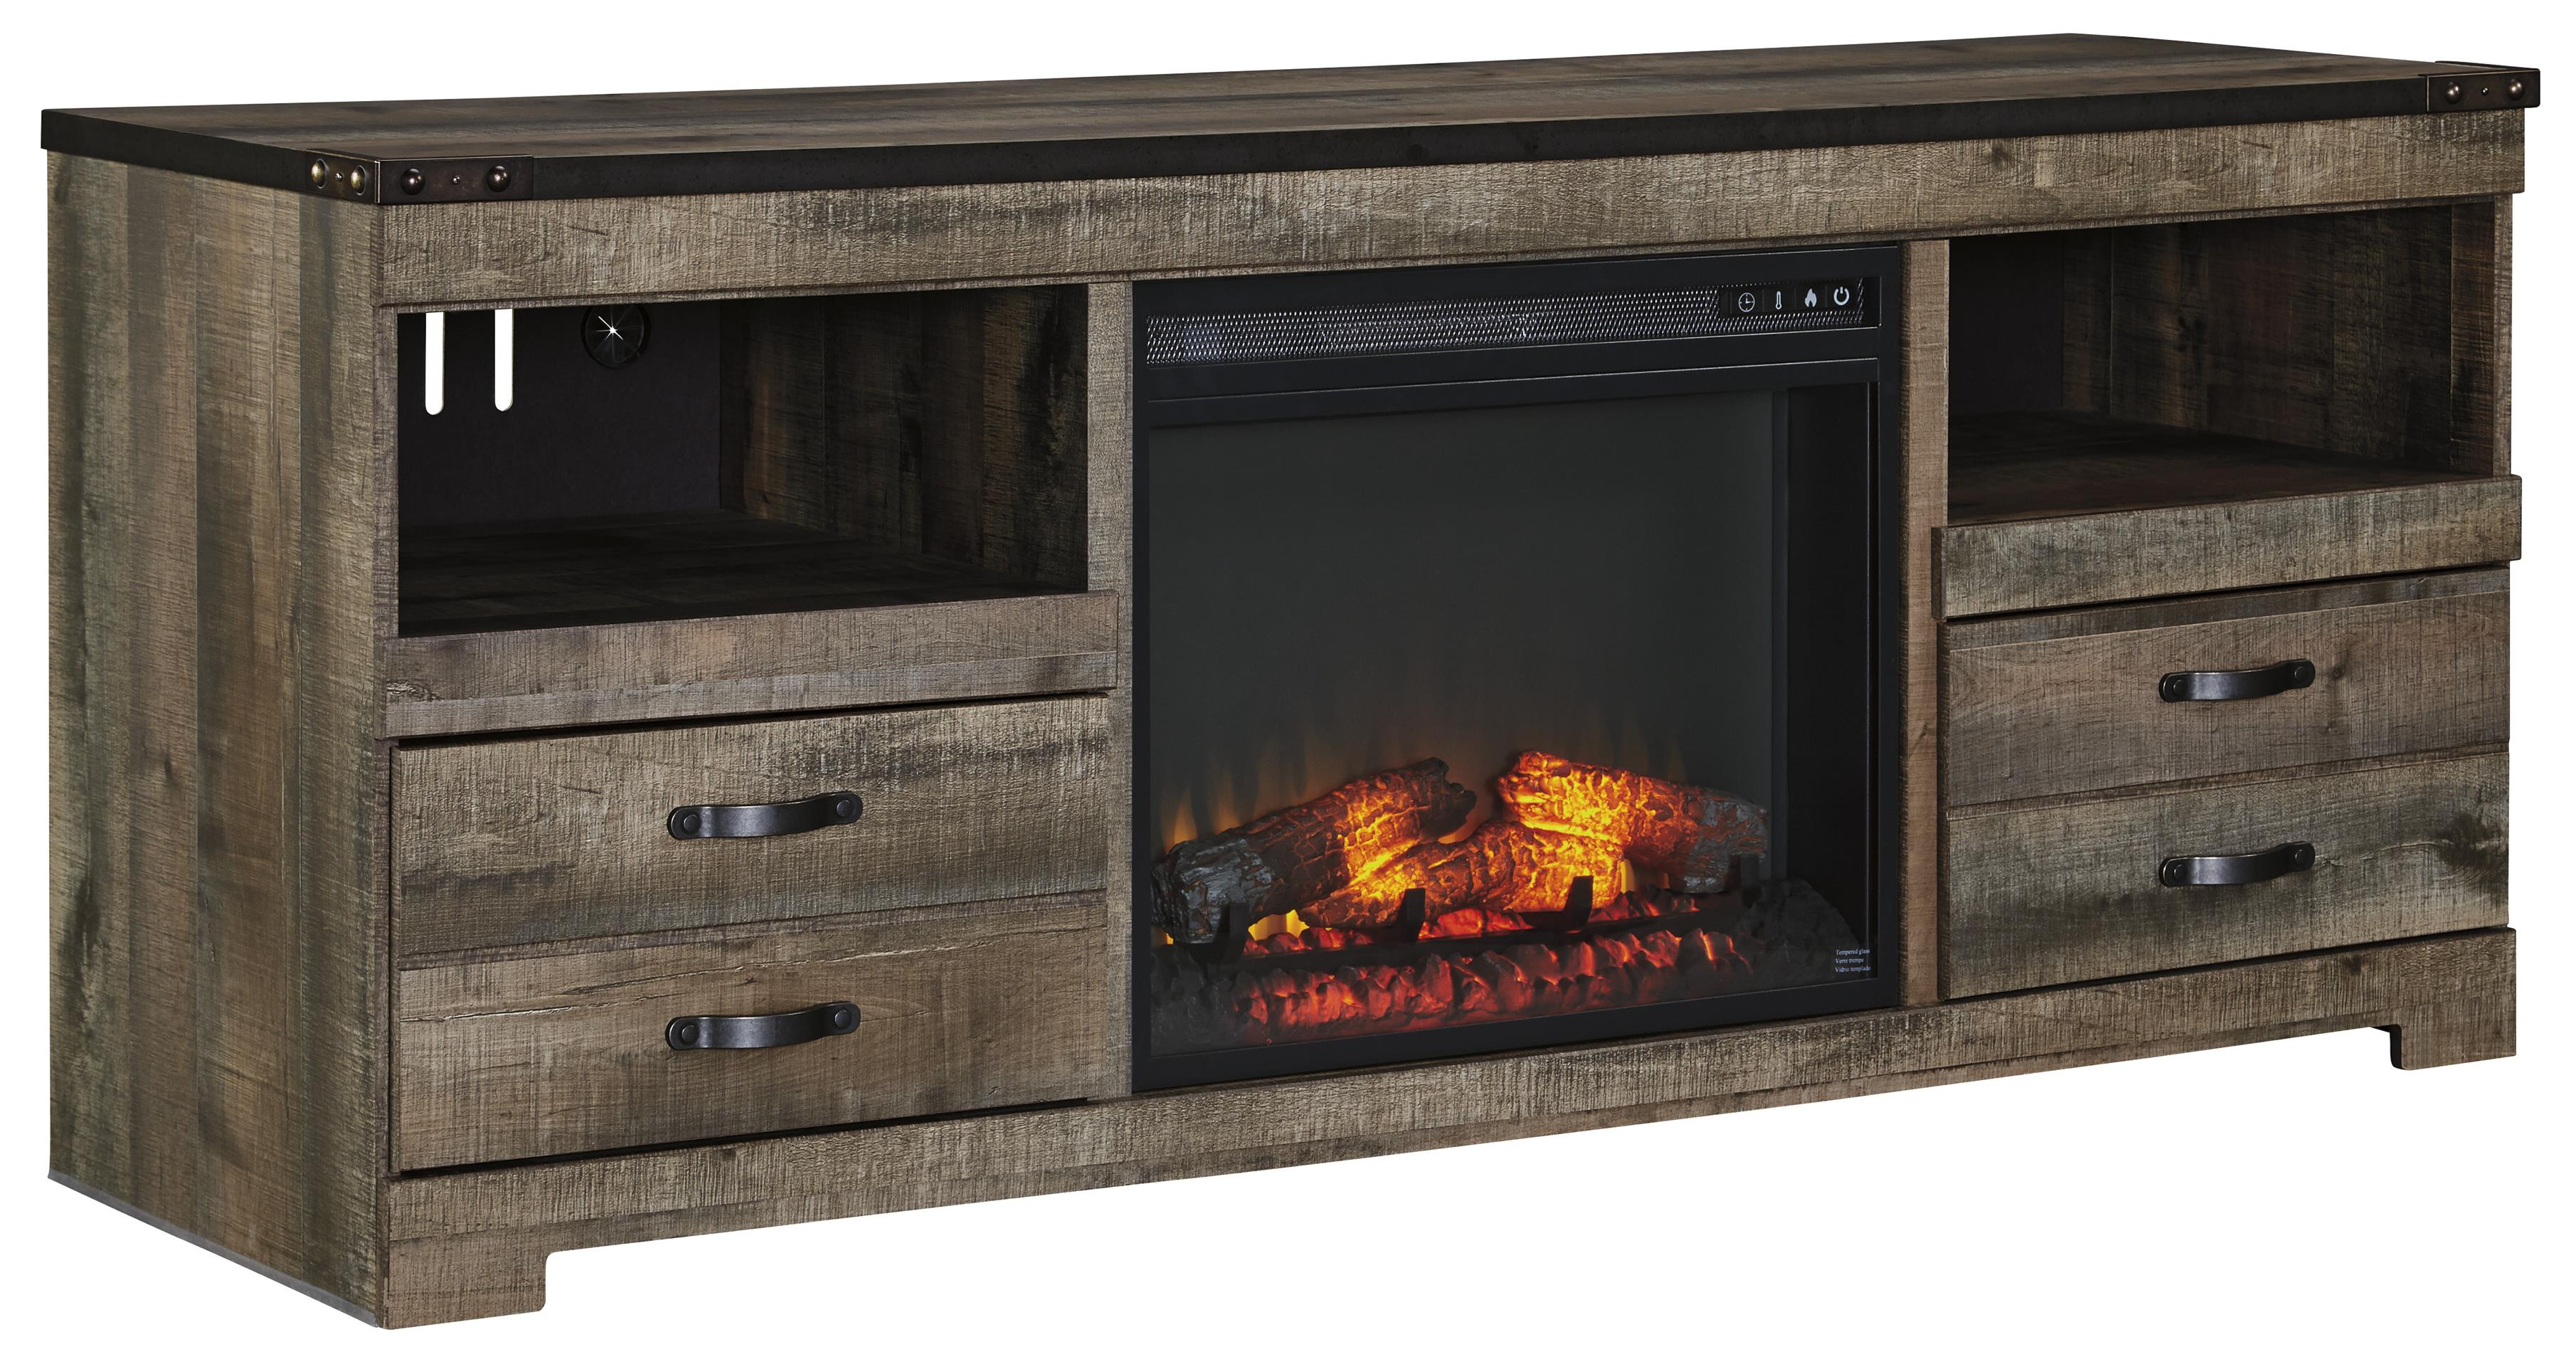 rustic fireplace tv stand Rustic Large TV Stand with Fireplace Insert by Signature Design by  rustic fireplace tv stand